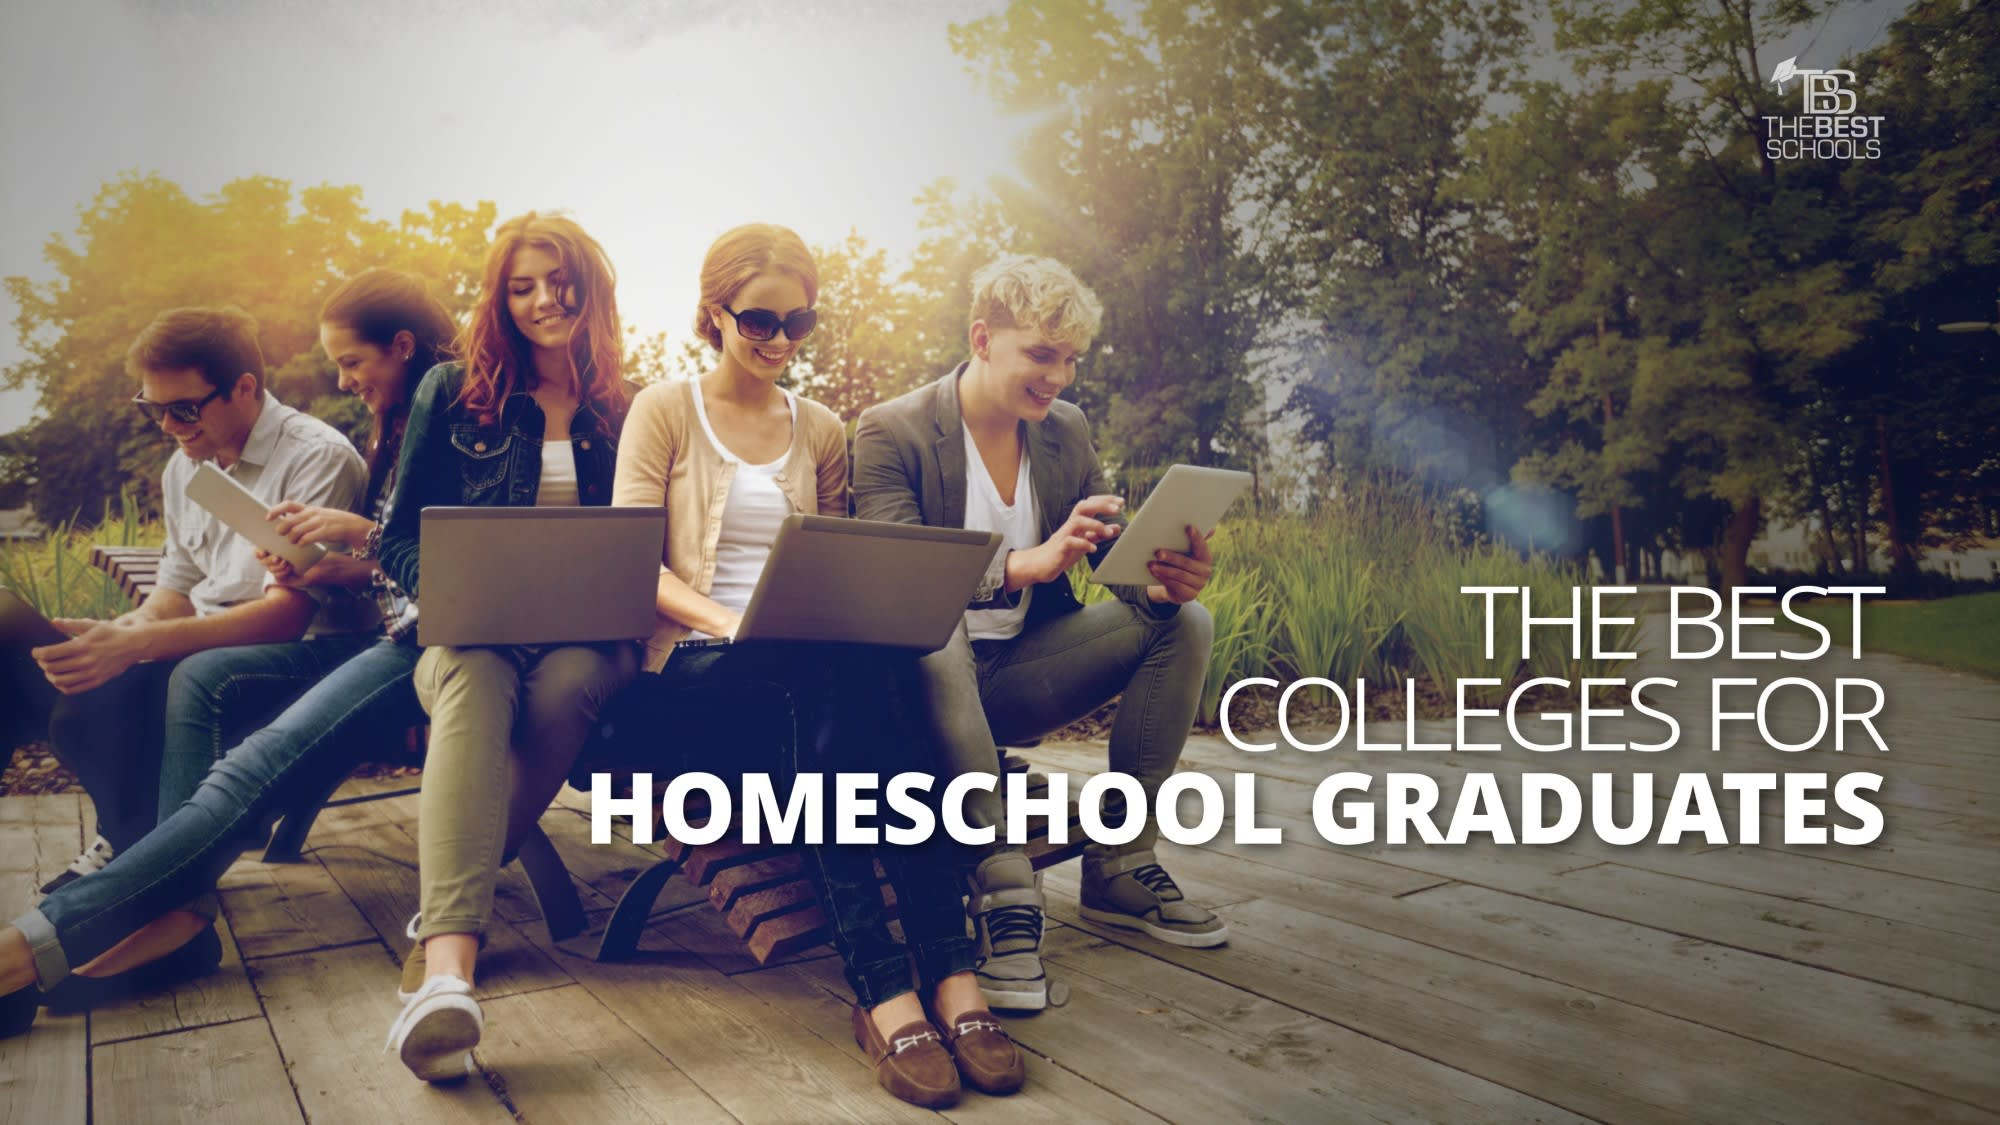 The Best Colleges for Homeschool Graduates | TheBestSchools org